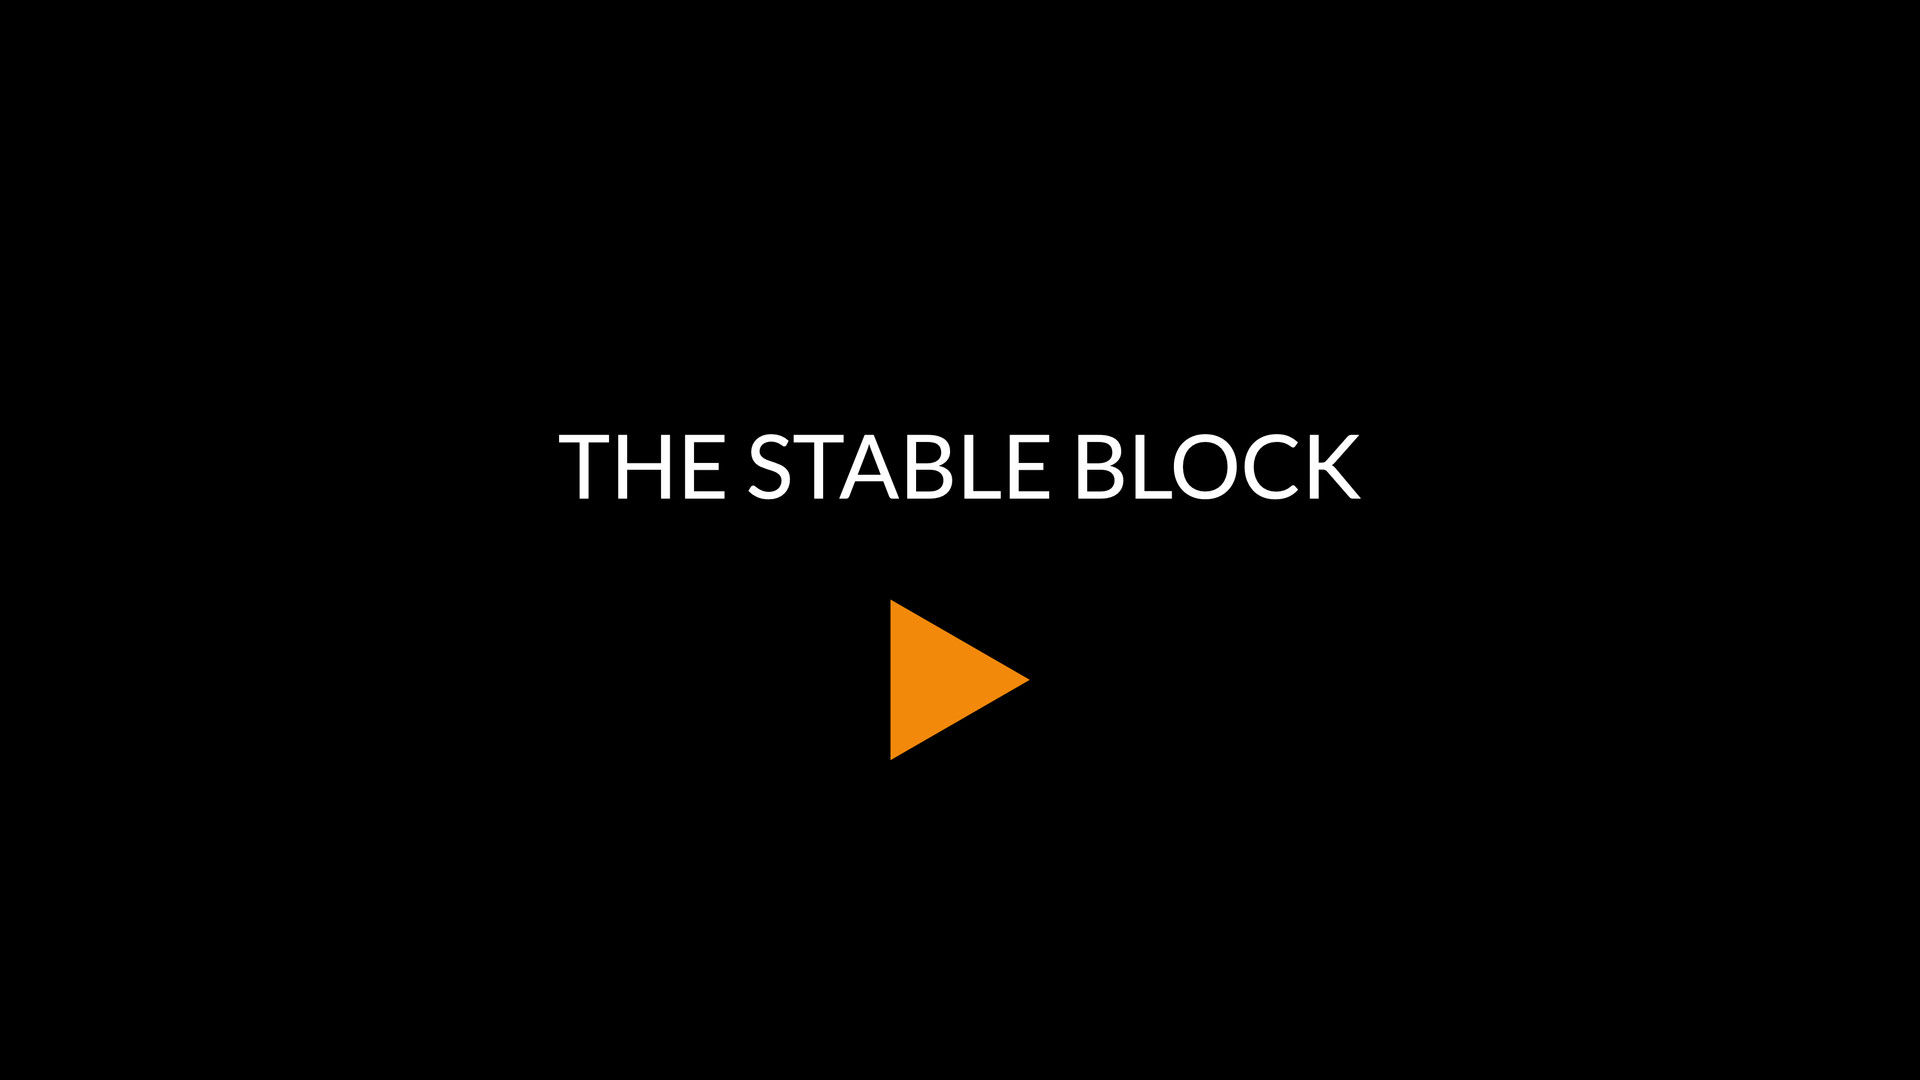 THE STABLE BLOCK 57secs.mp4